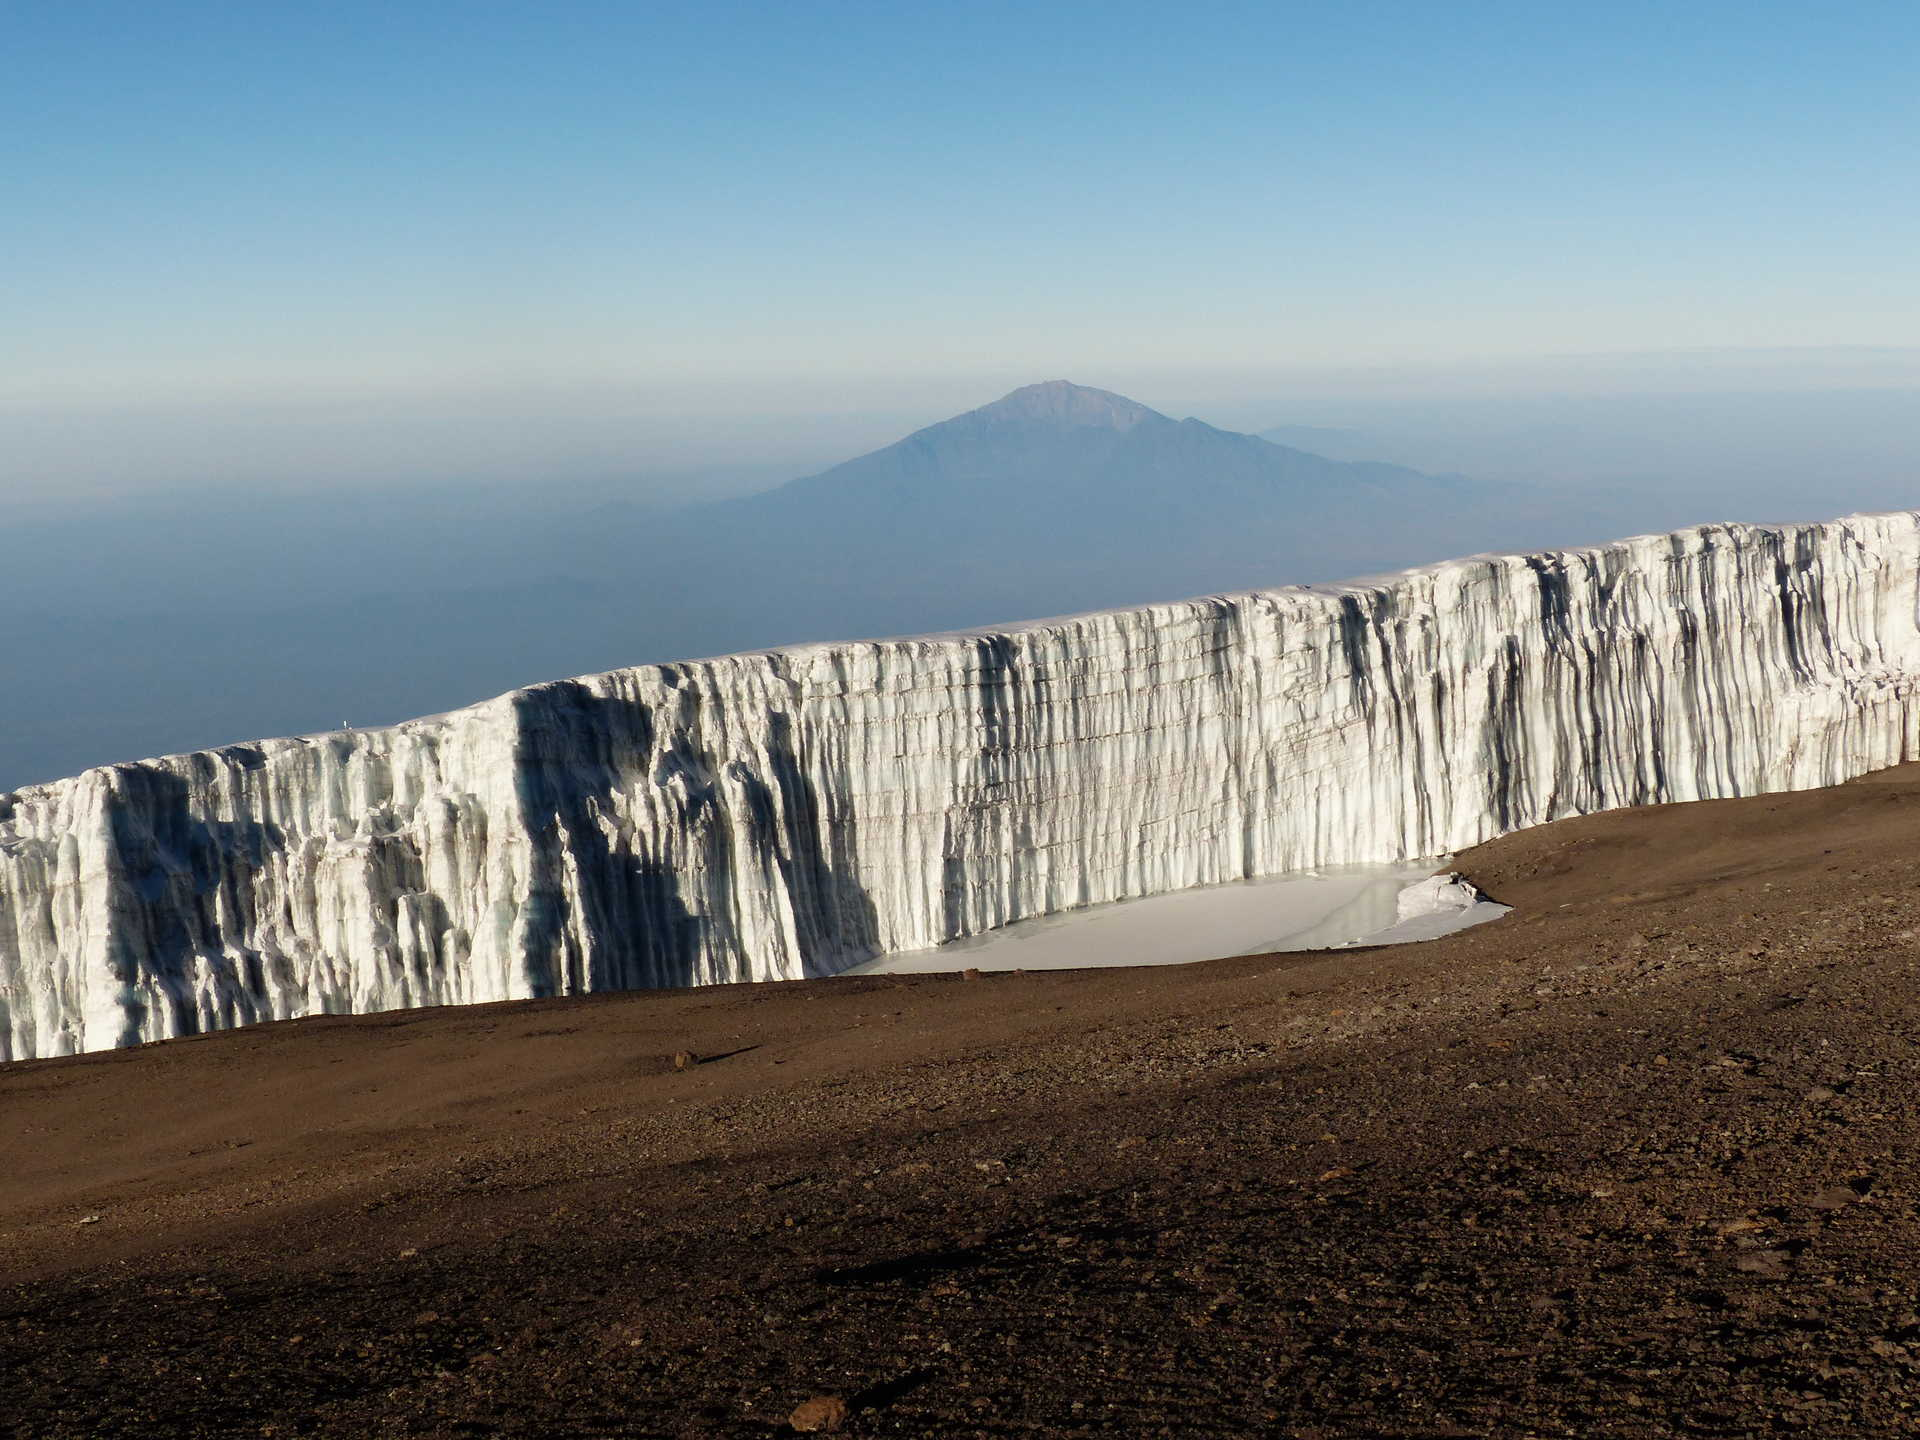 Summit of Kilimanjaro